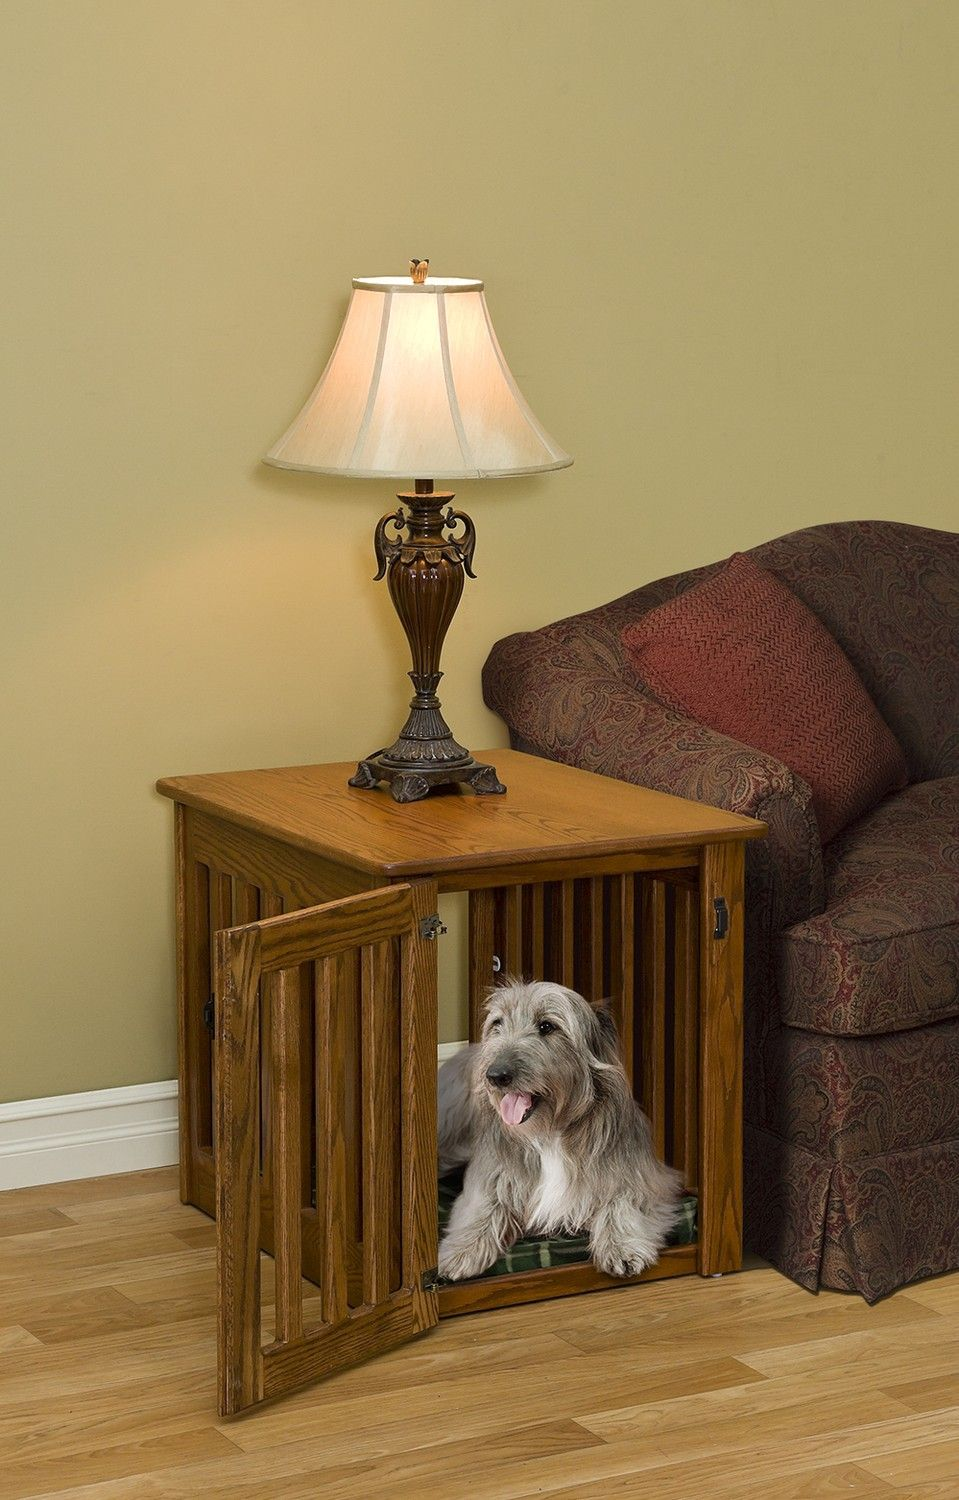 Medium Wooden Dog Crate End Table Made By Amish Craftman